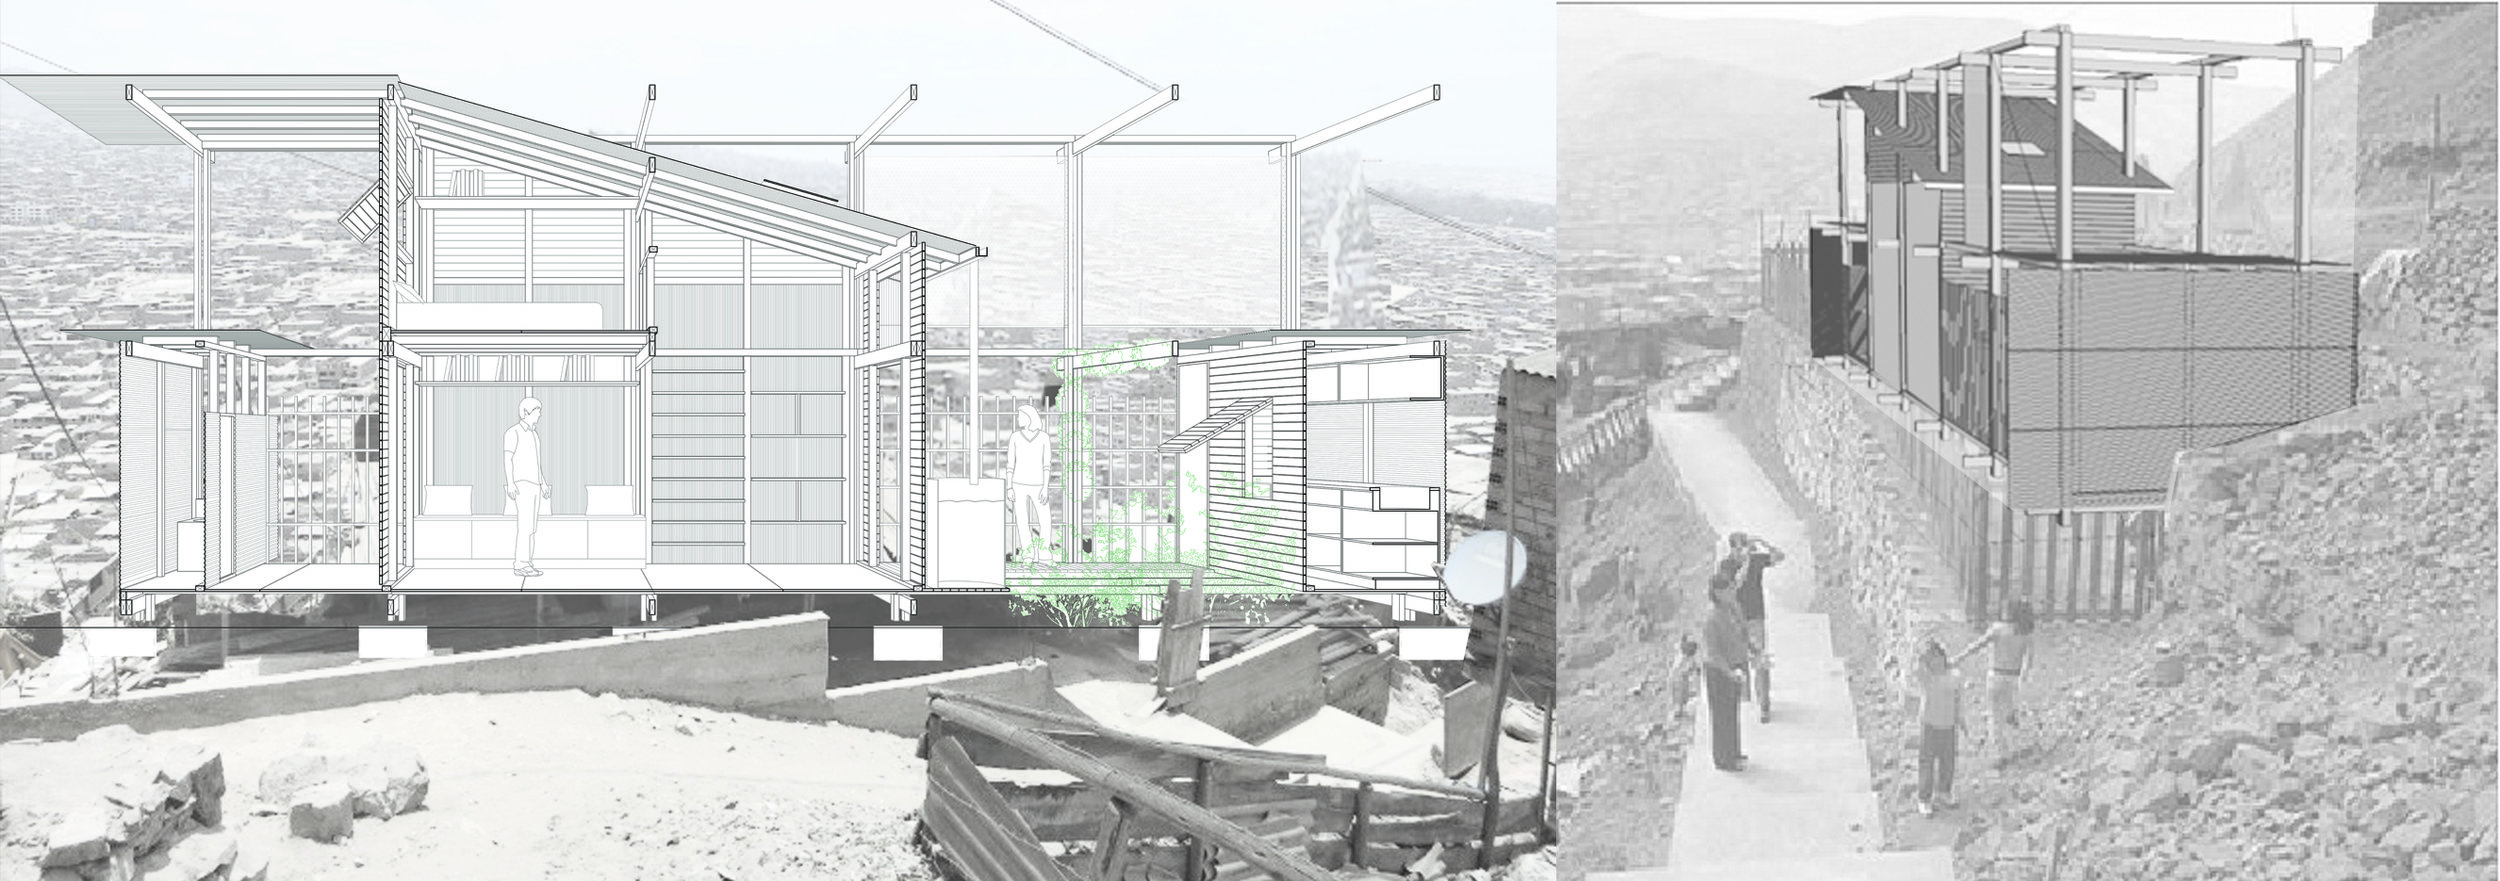 Our entry for Habitat for Inhabitants, International Prototype Housing Competition for slum communities in Lima, Perù, receives an Honourable Mention. Designed in collaboration with Sean Rafferty.   https://dnadd.org/concorsi-passati/